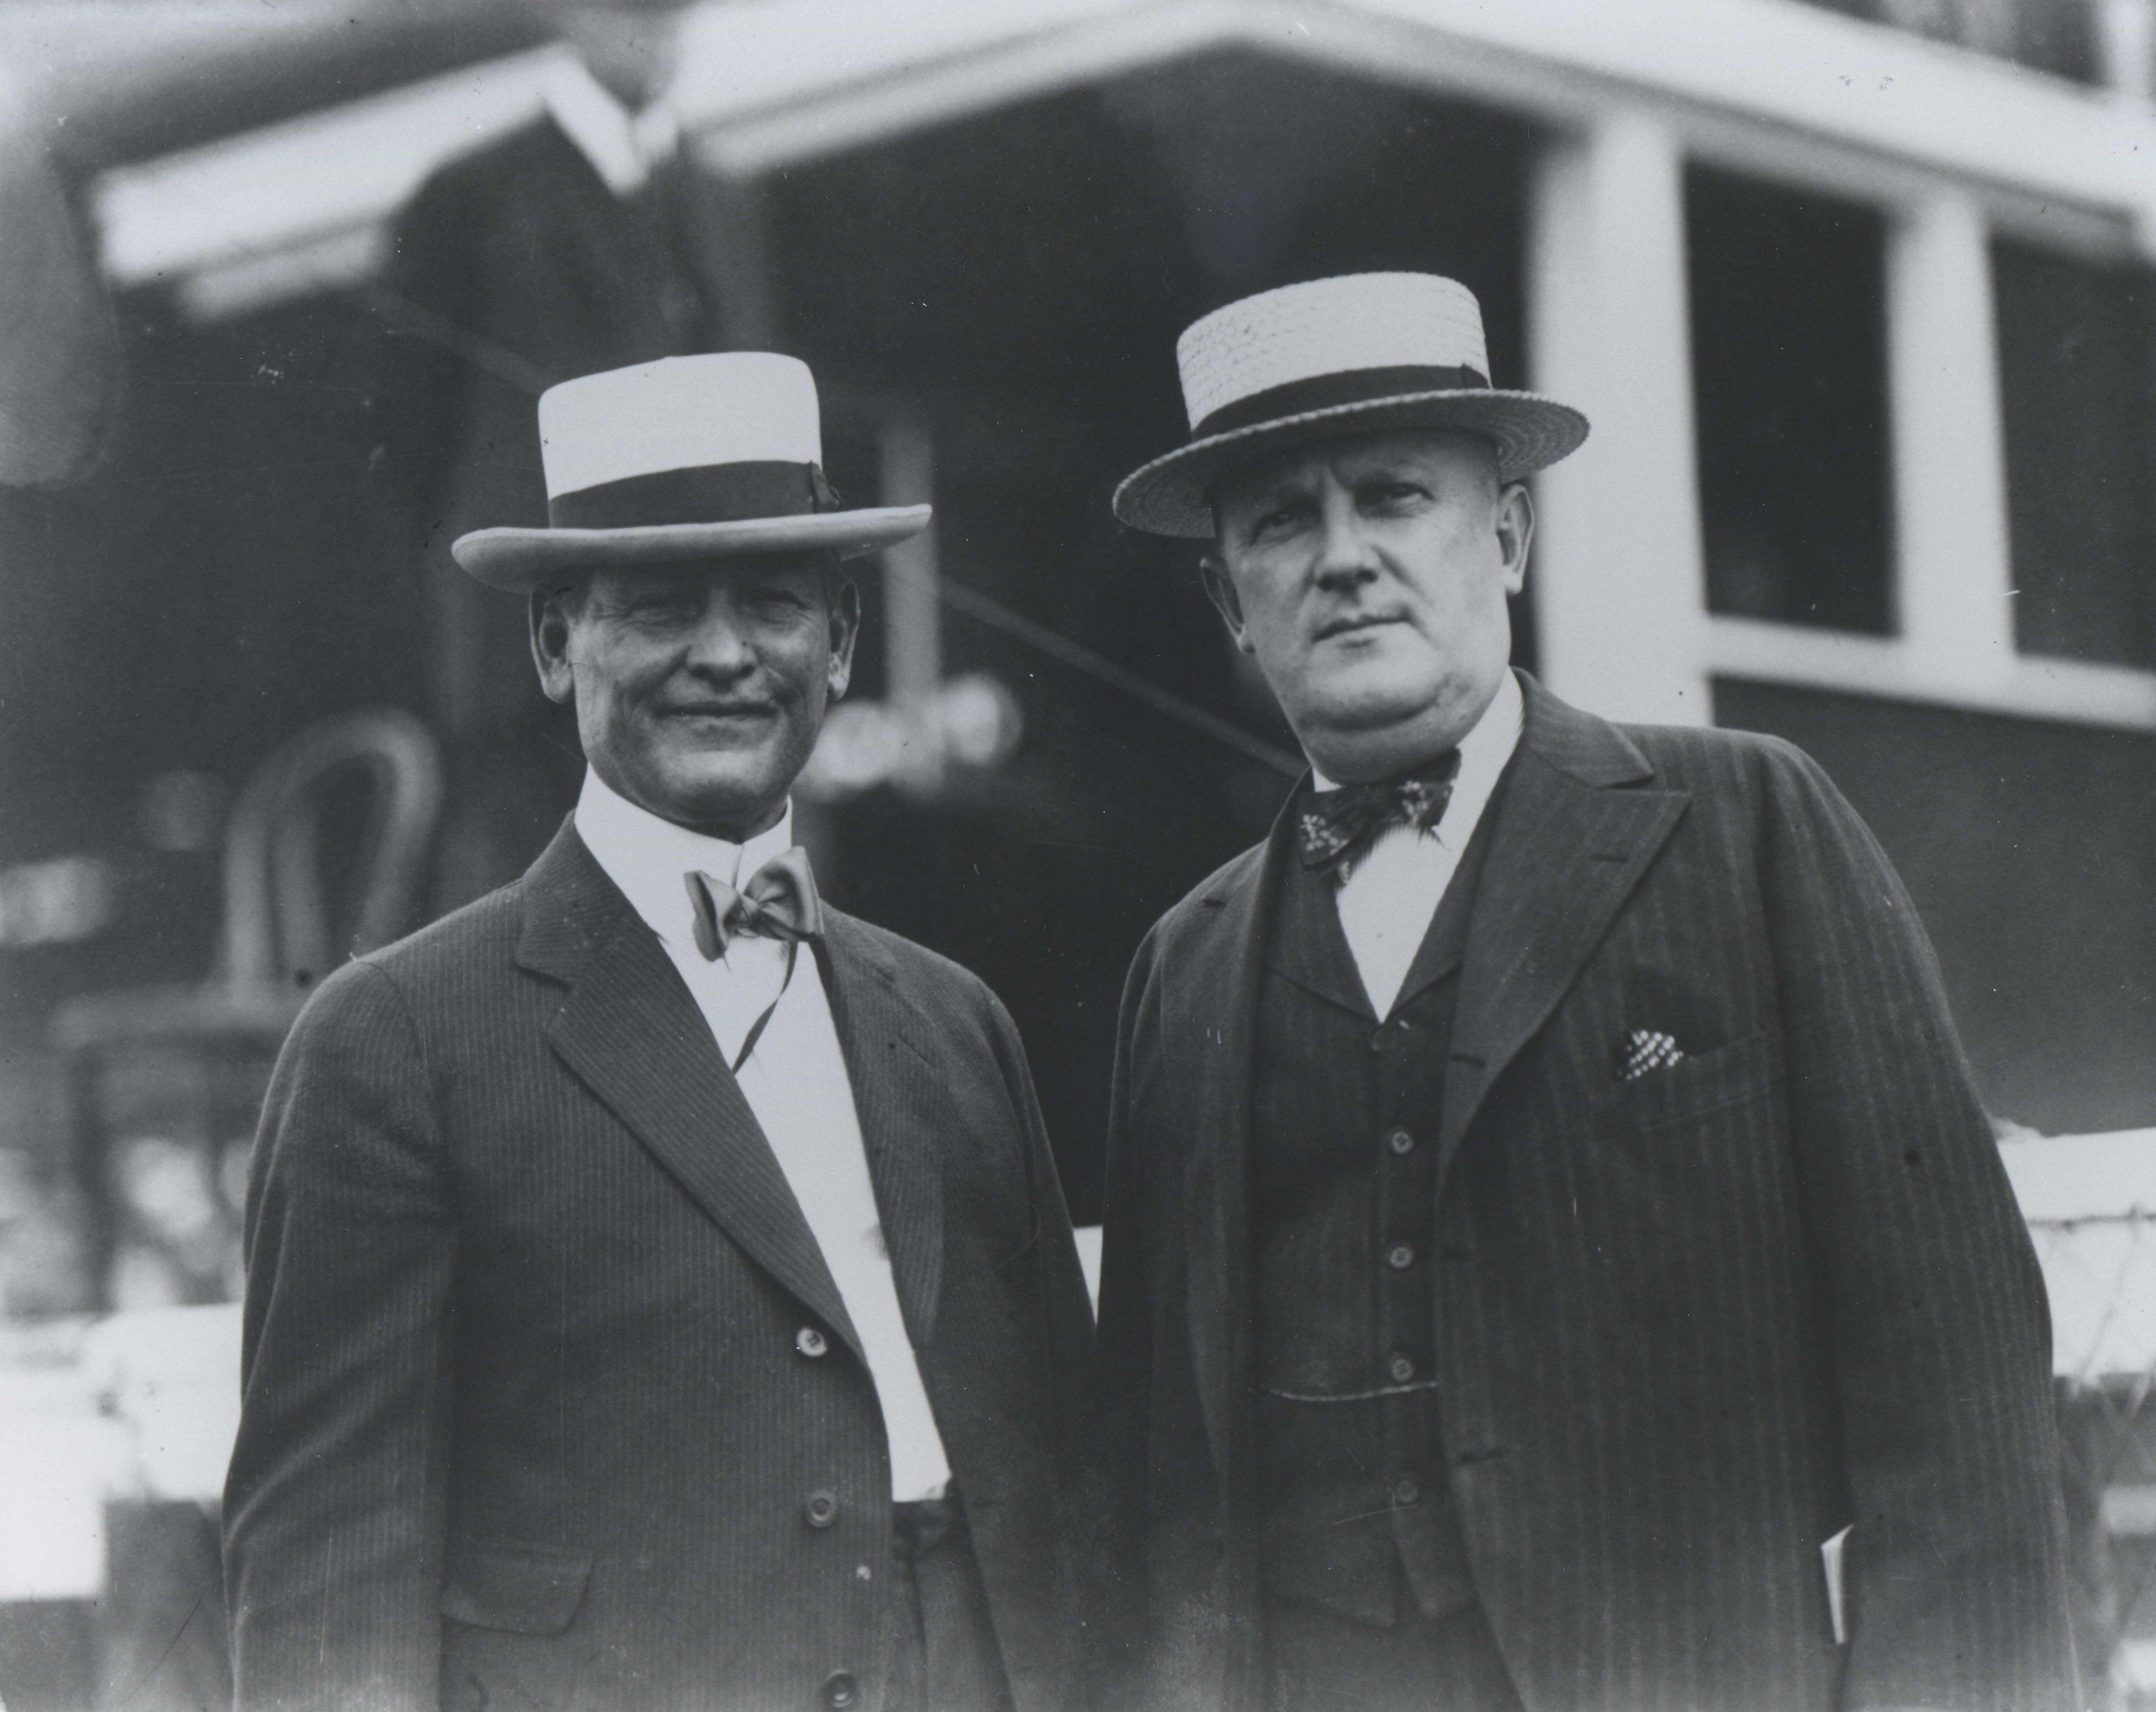 James G. Rowe, Sr. (on left) and an unidentified man (Keeneland Library Cook Collection/Museum Collection)